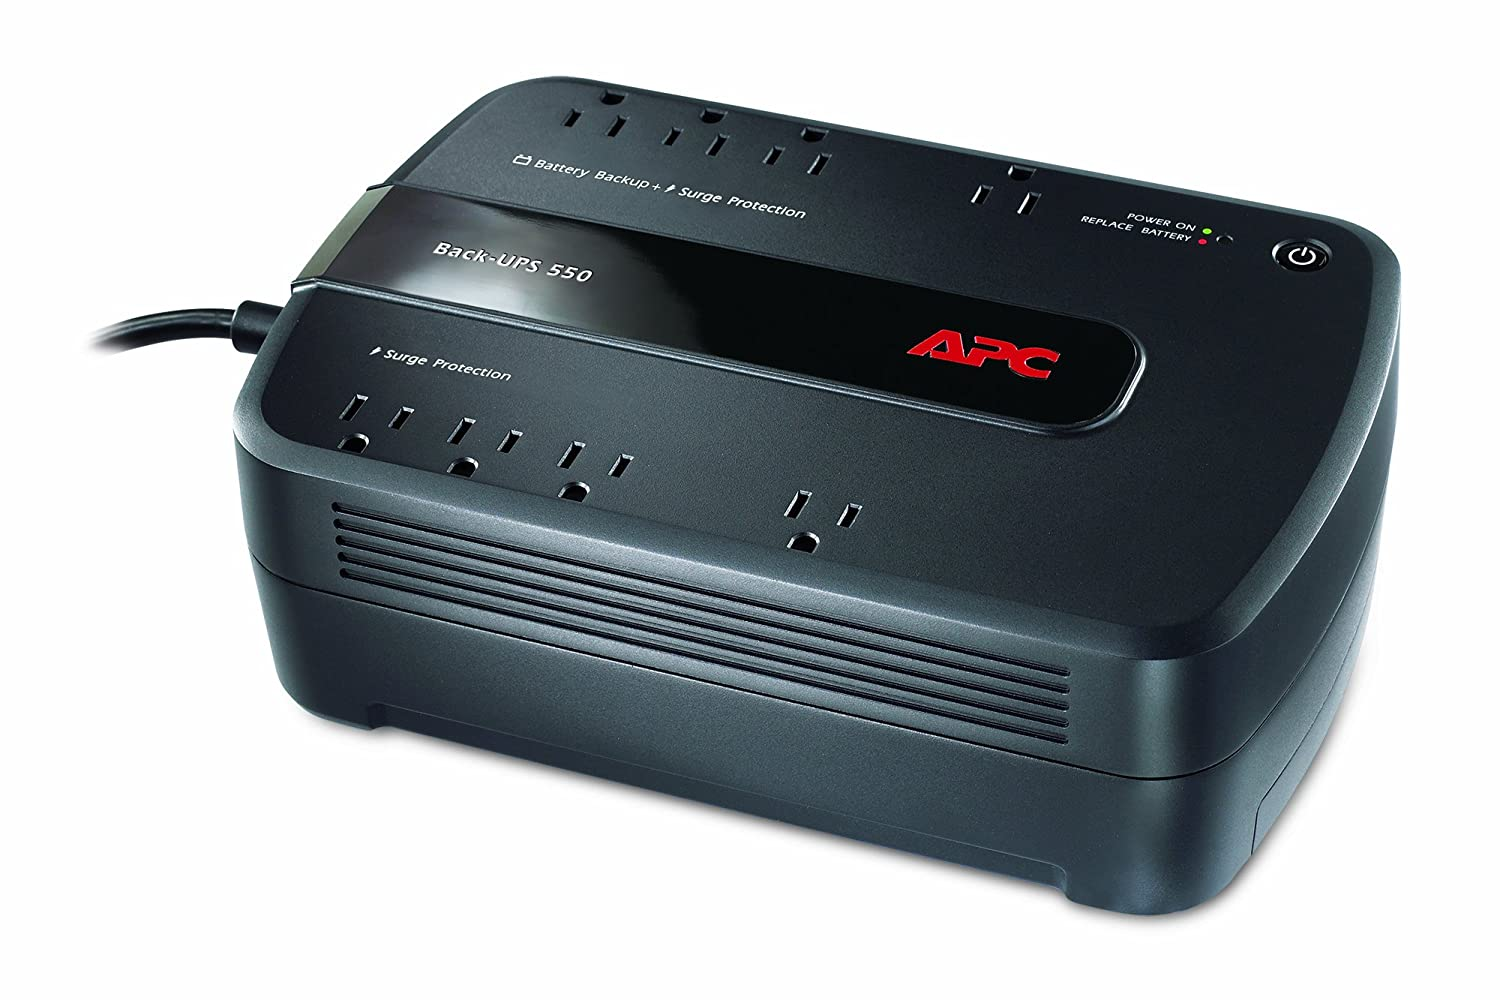 Apc Ups Battery Backup Surge Protector 550va Electronic Appliance Back Be550g Home Audio Theater